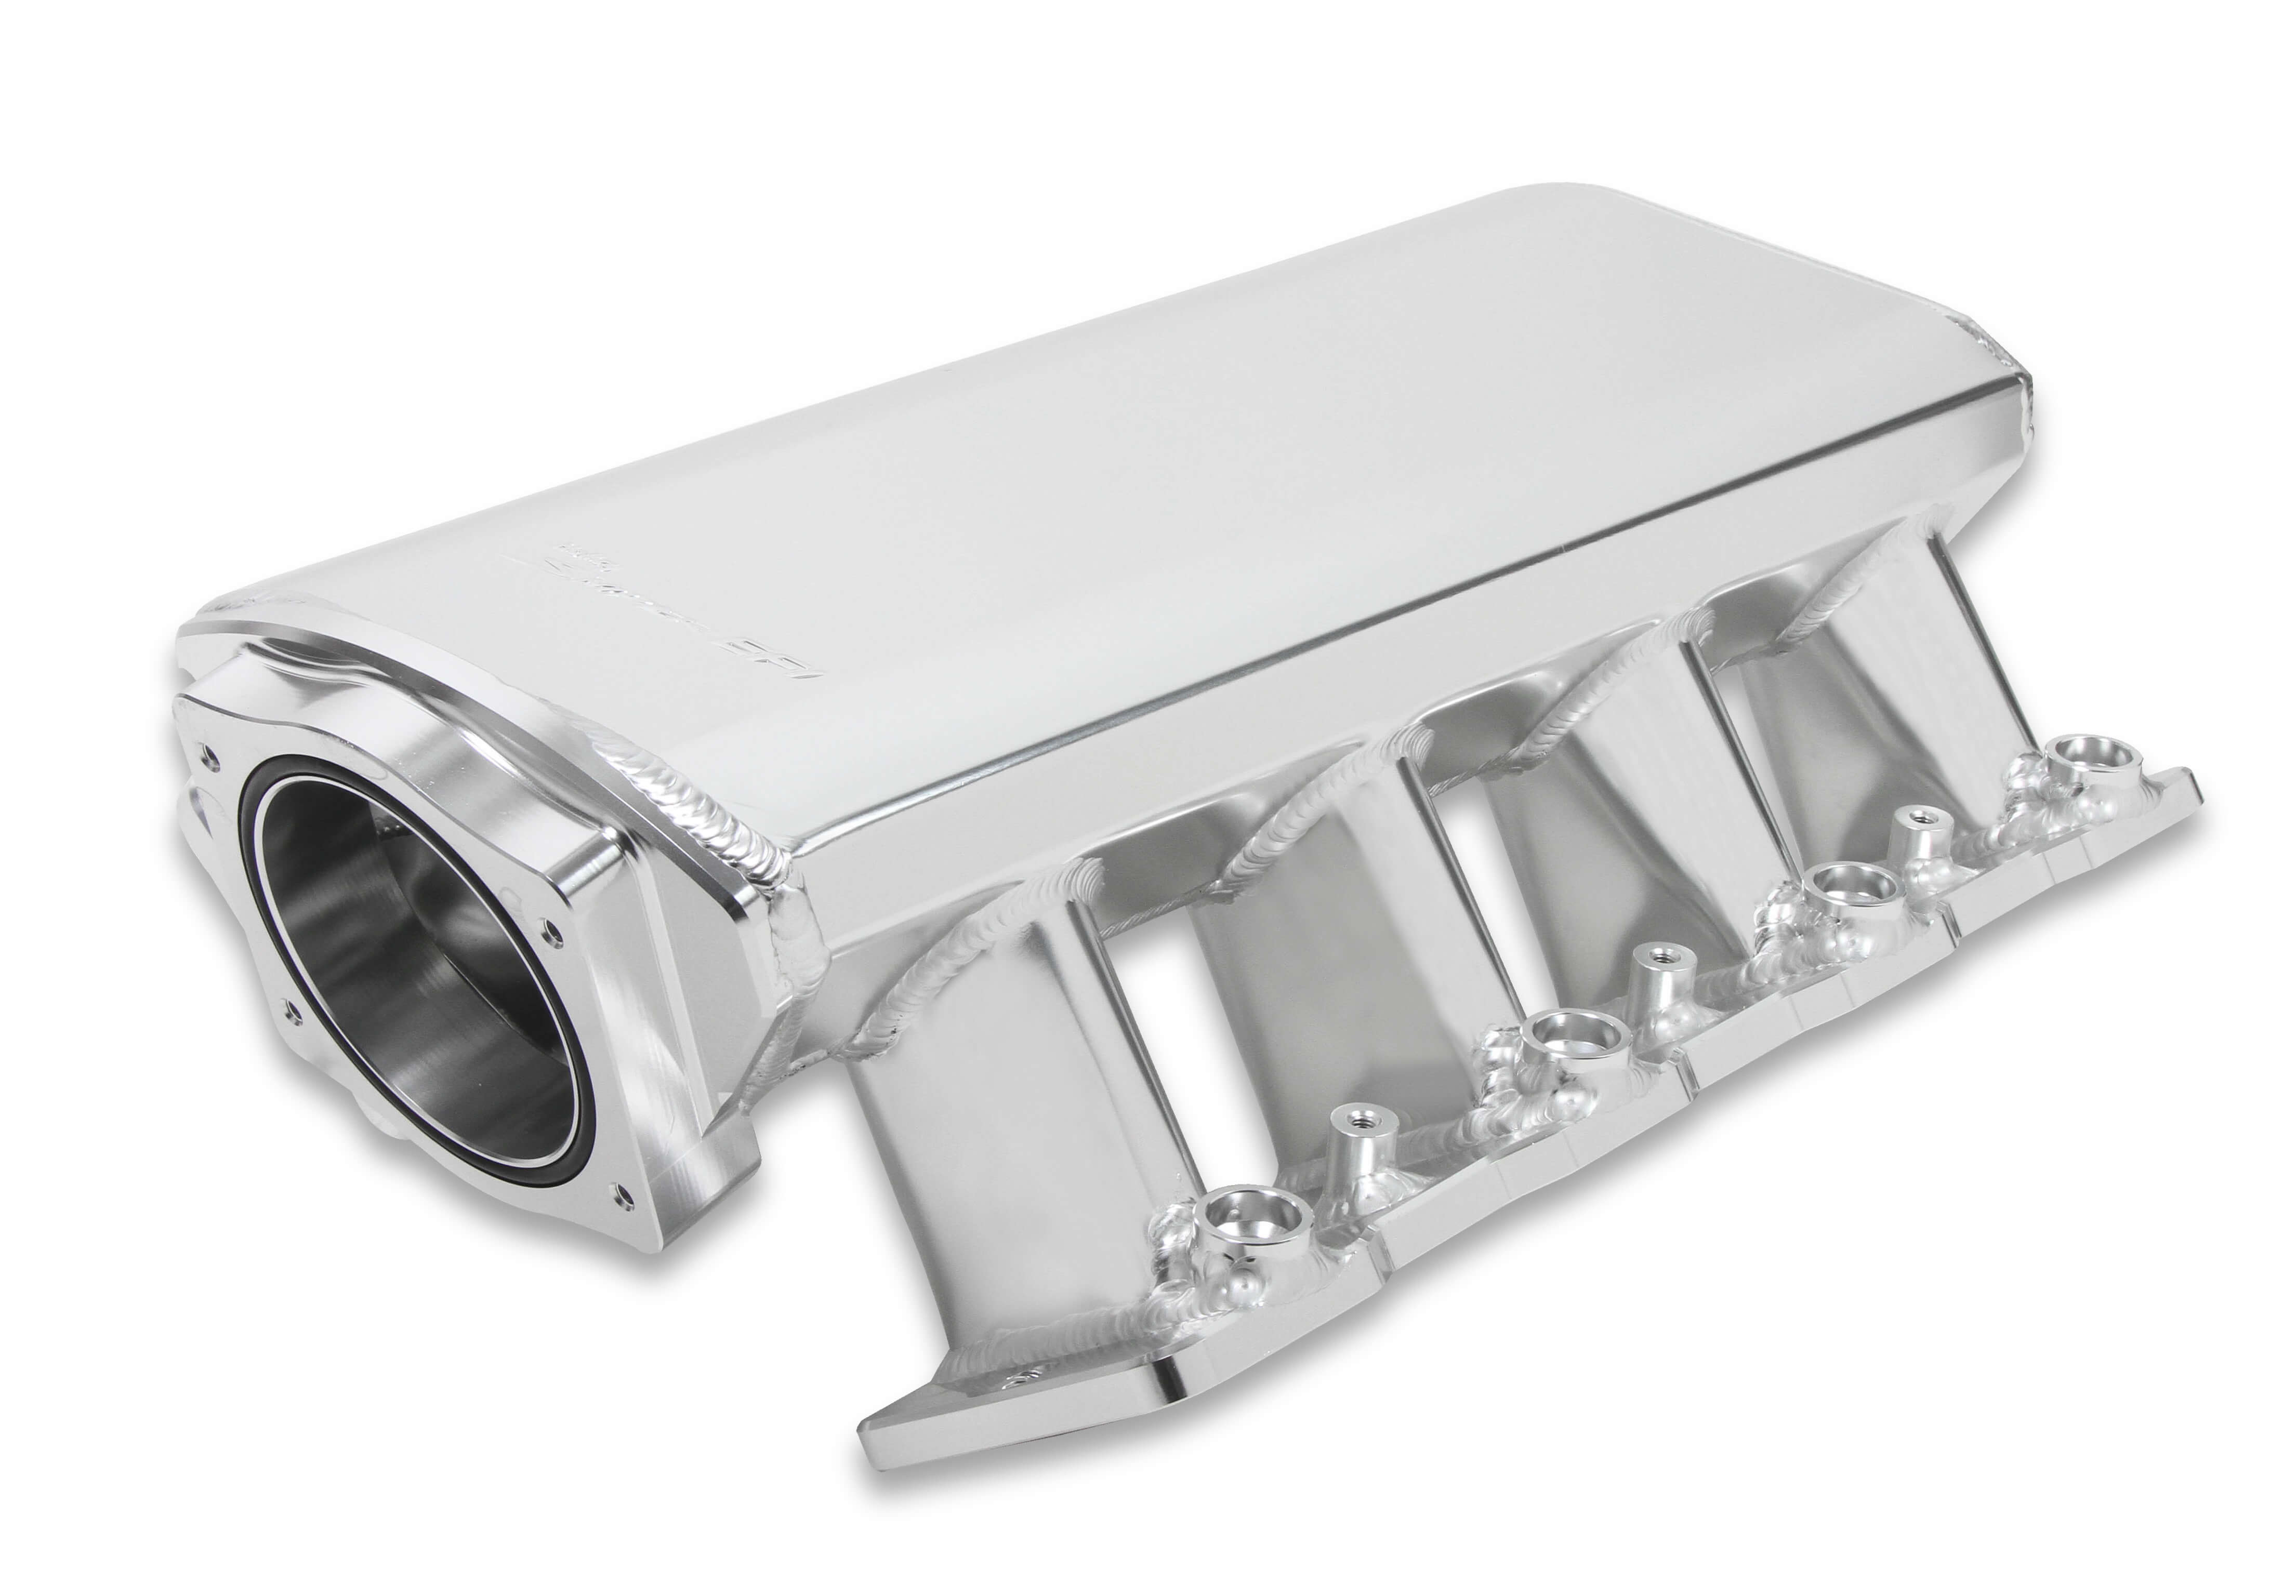 LS1/LS2/LS6 Holley Sniper EFI Low-Profile 92mm Sheet Metal Fabricated Intake Manifold w/Fuel Rail Kit - Silver